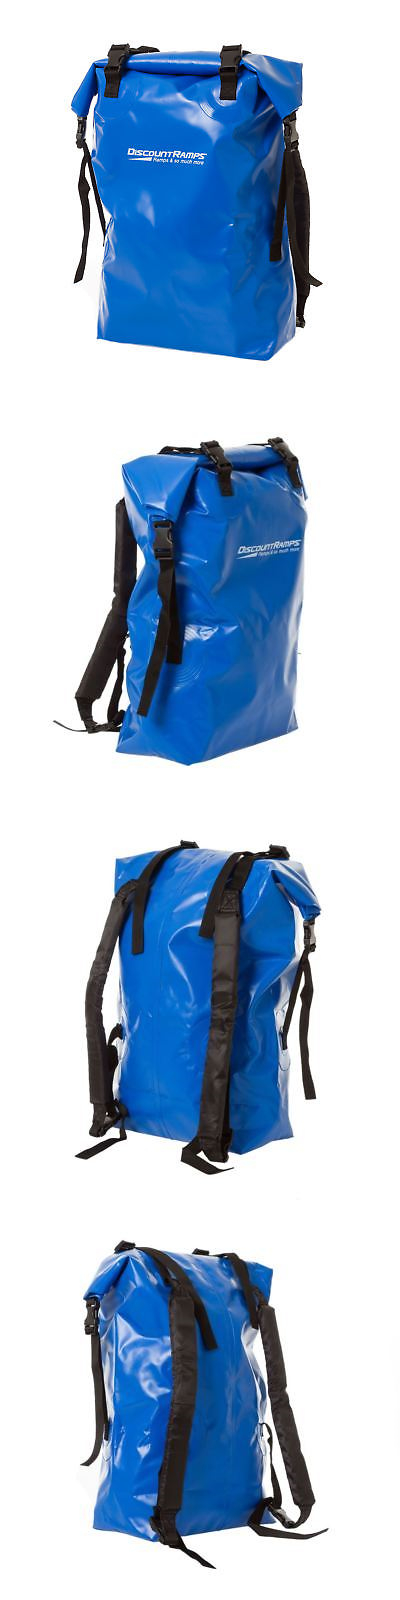 09585742d61 Accessories 87089  Blue 50 Liter Waterproof Dry Bag Backpack -  BUY IT NOW  ONLY